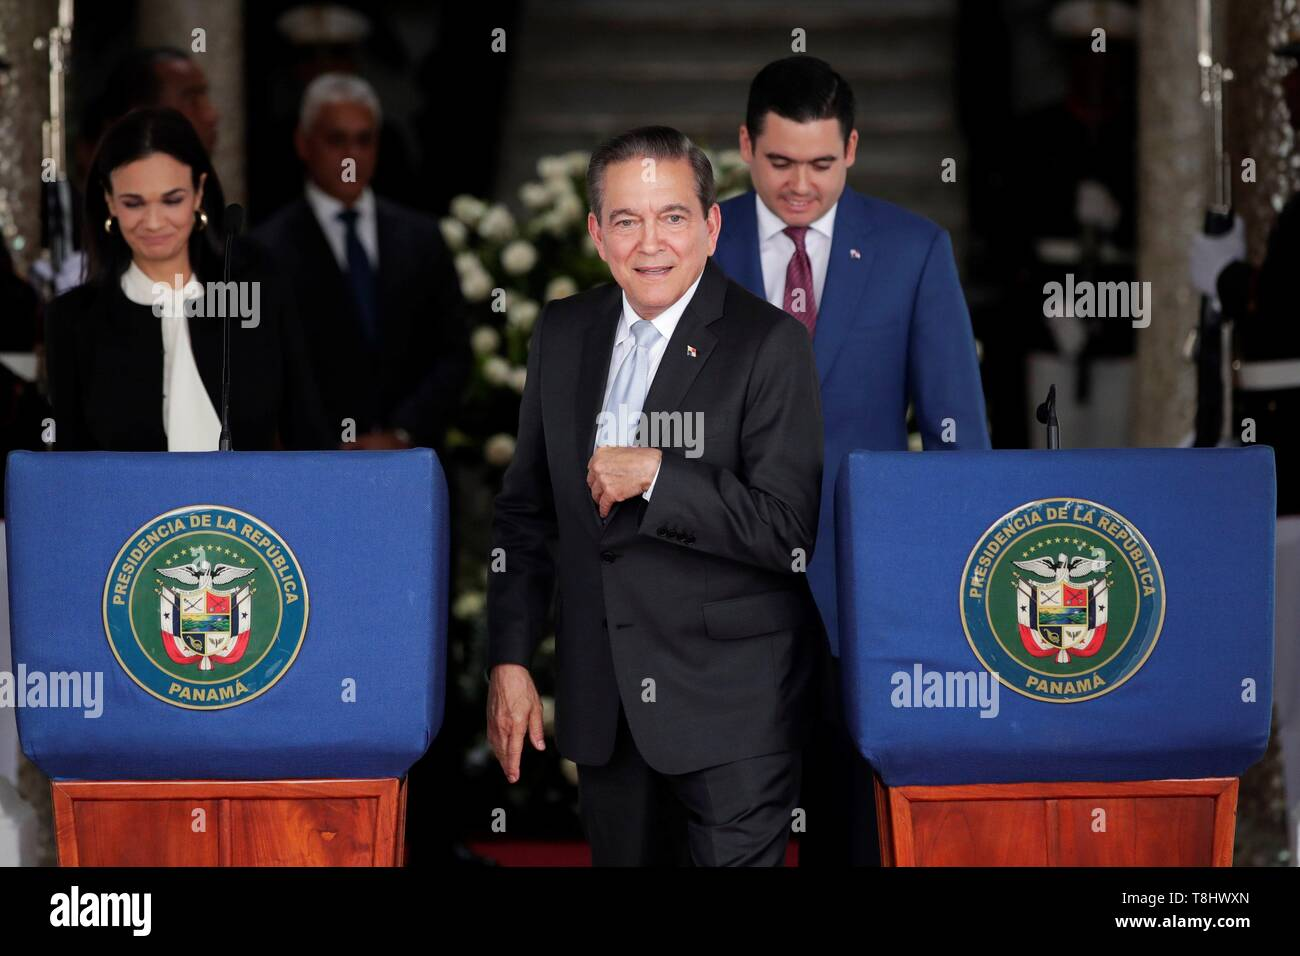 Panama's elect President Laurentino Cortizo is seen during a press conference with the President Juan Carlos Varela (out of frame) after a meeting of command handover at the Presidential Palace, in Panama City, Panama, on 13 May 2019. EFE/Bienvenido Velasco Stock Photo